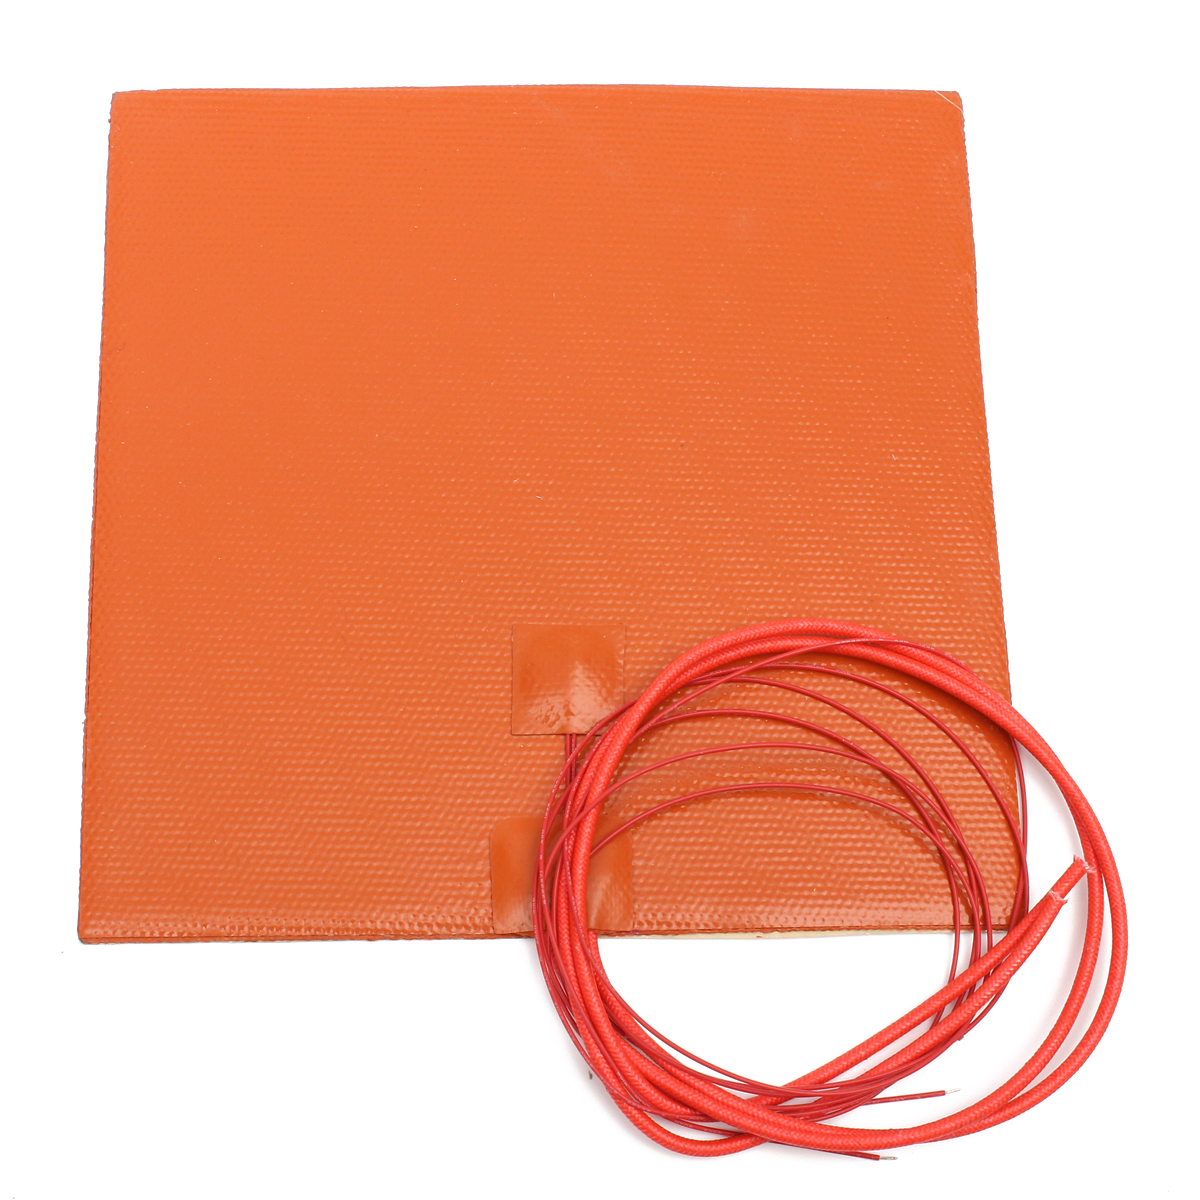 12V 200W 200mmx200mm Waterproof Flexible Silicone Heating Pad Heater For 3d Printer Heat Bed